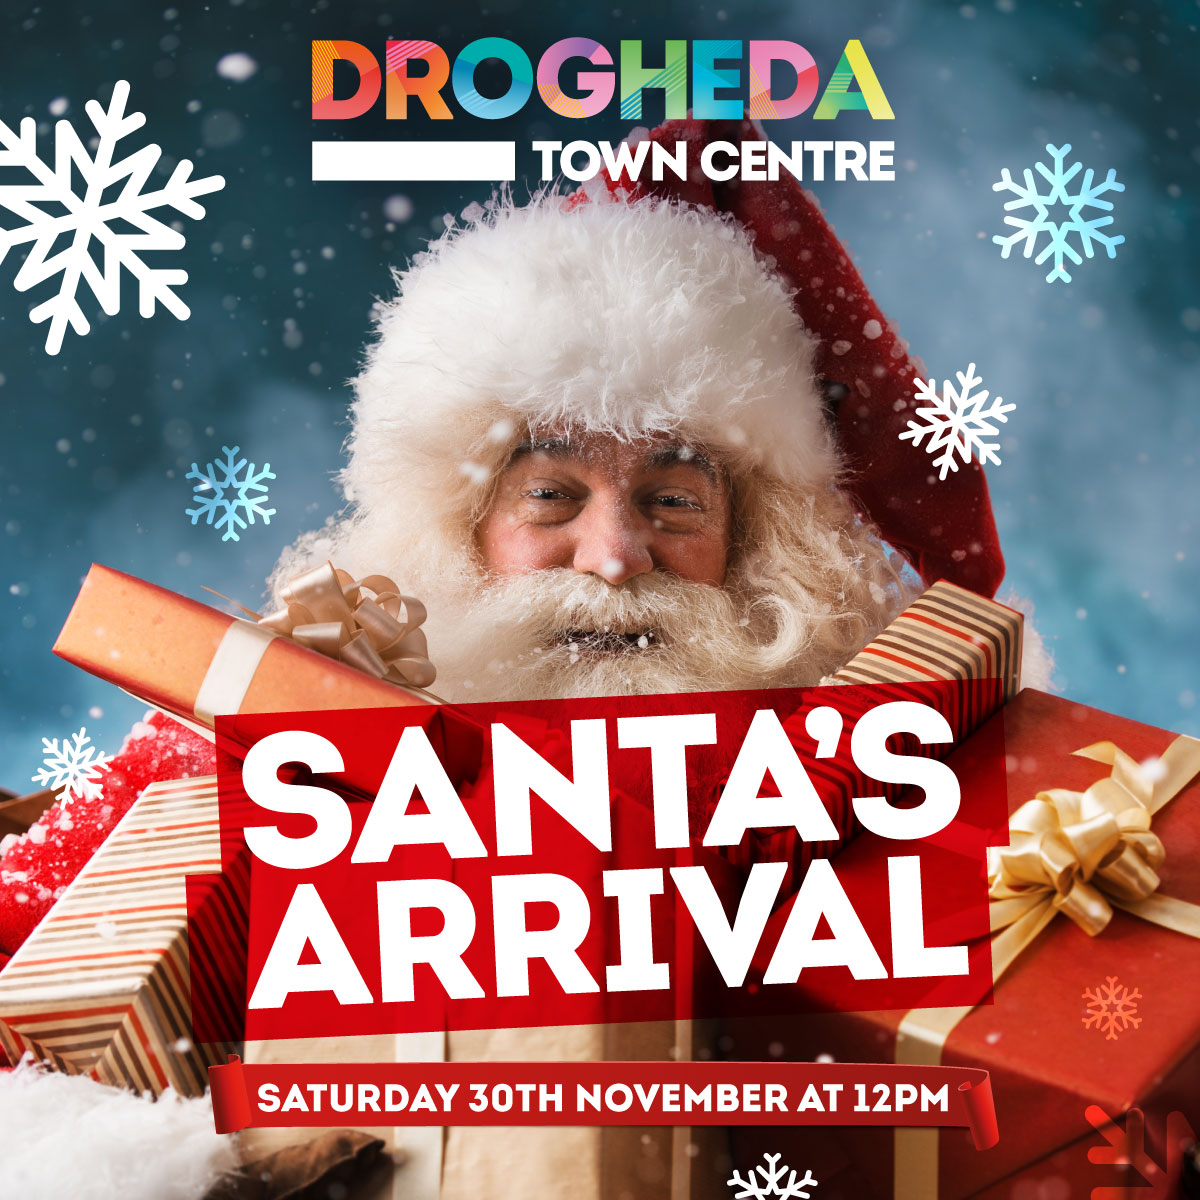 SANTA IS COMING TO DROGHEDA TOWN CENTRE